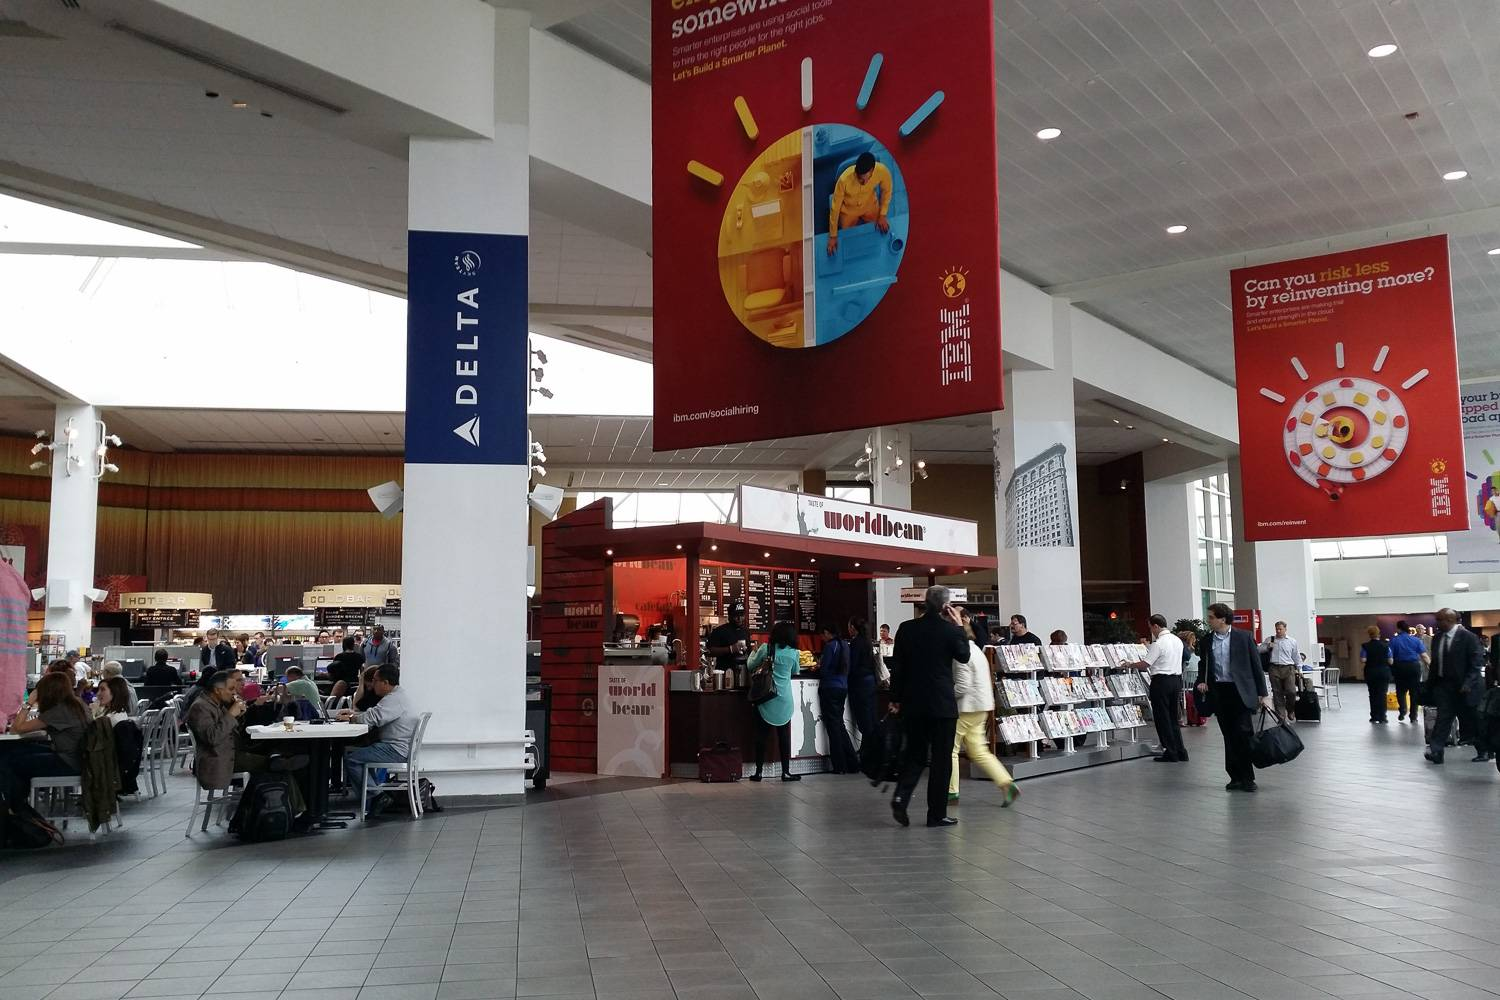 Image of interior of a terminal in LaGuardia Airport with food vendors.